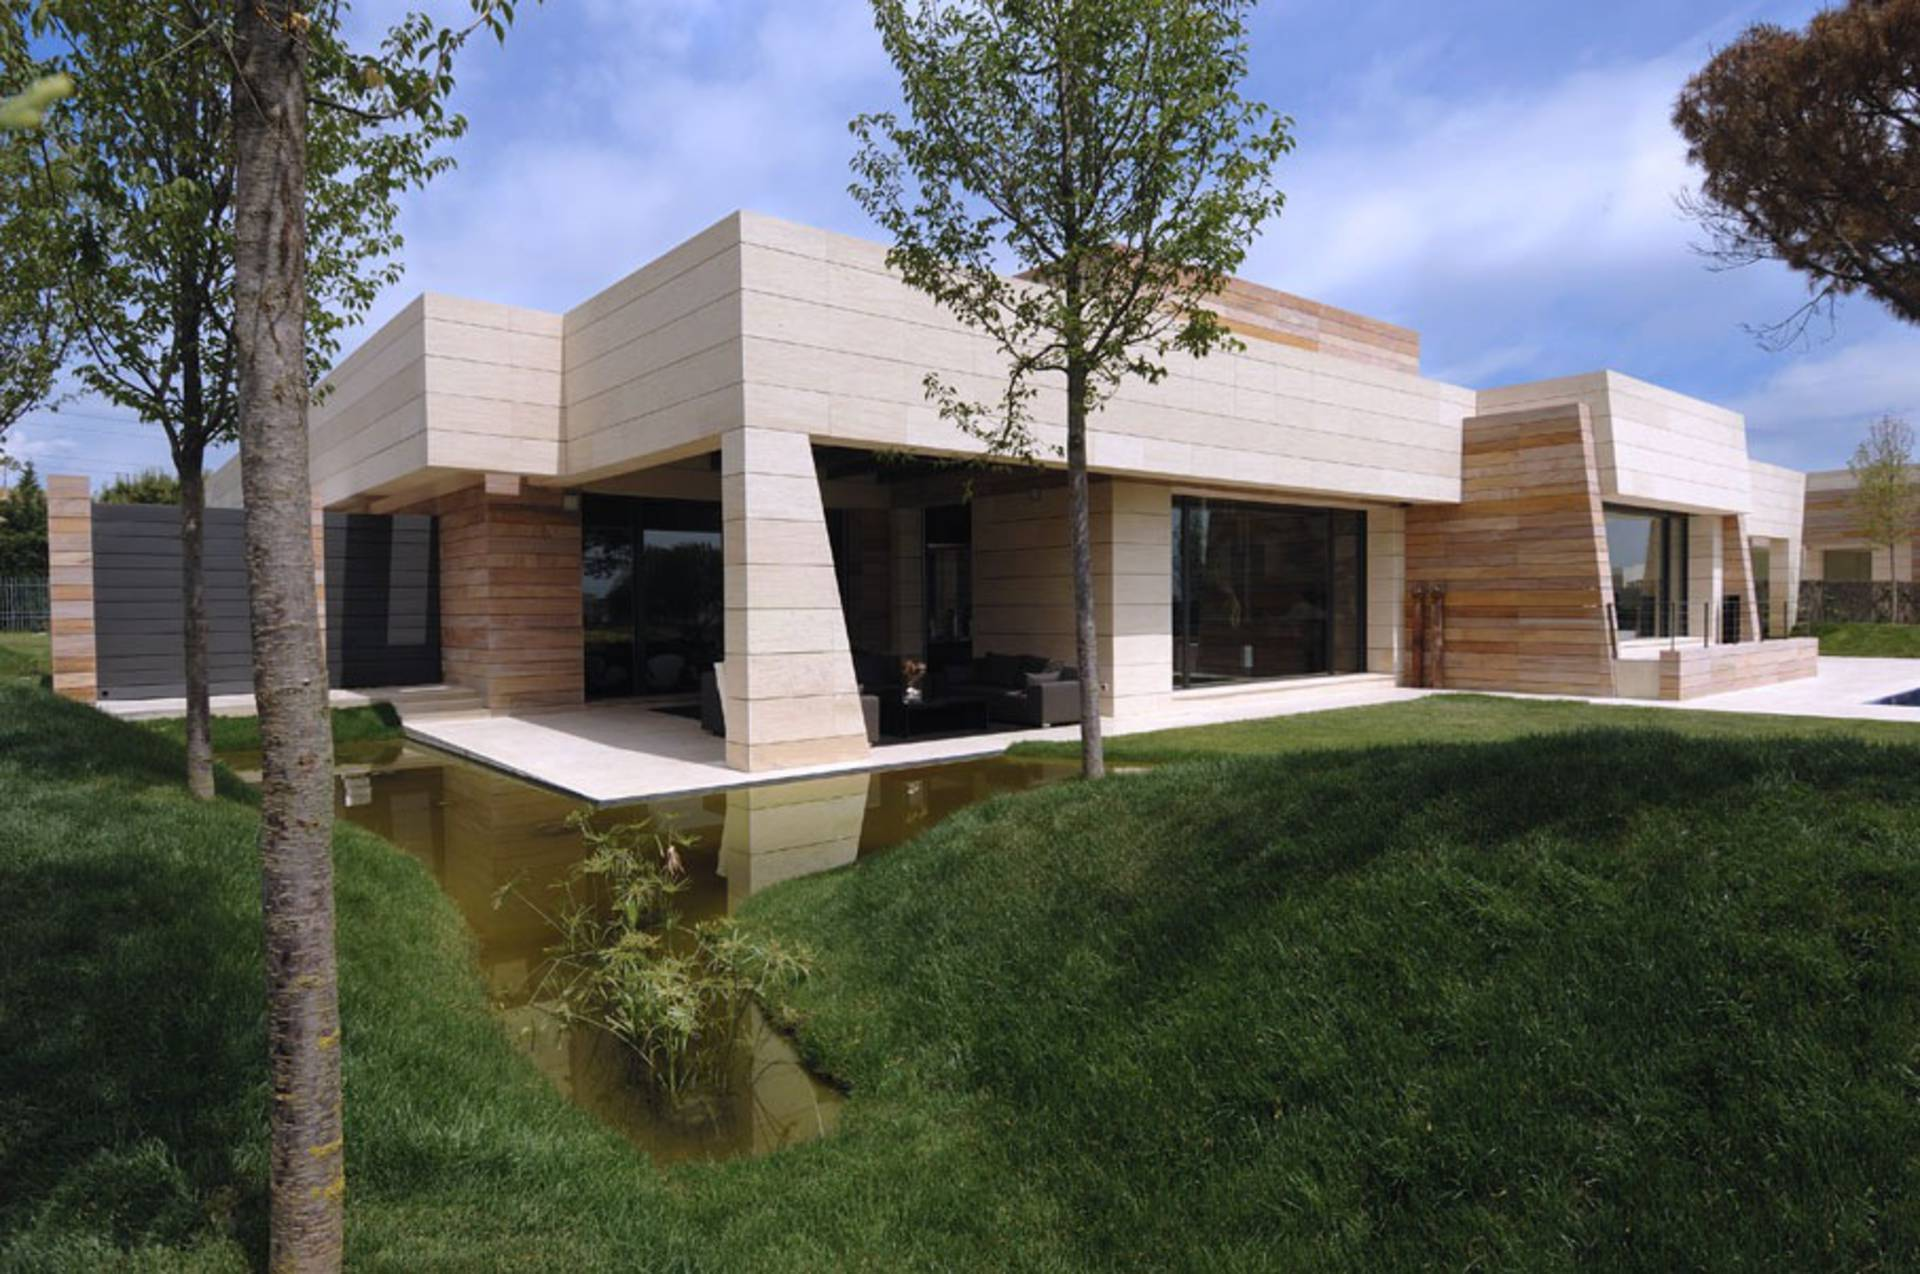 House design hilly area -  Contemporary House Design By A Cero La Finca Ii